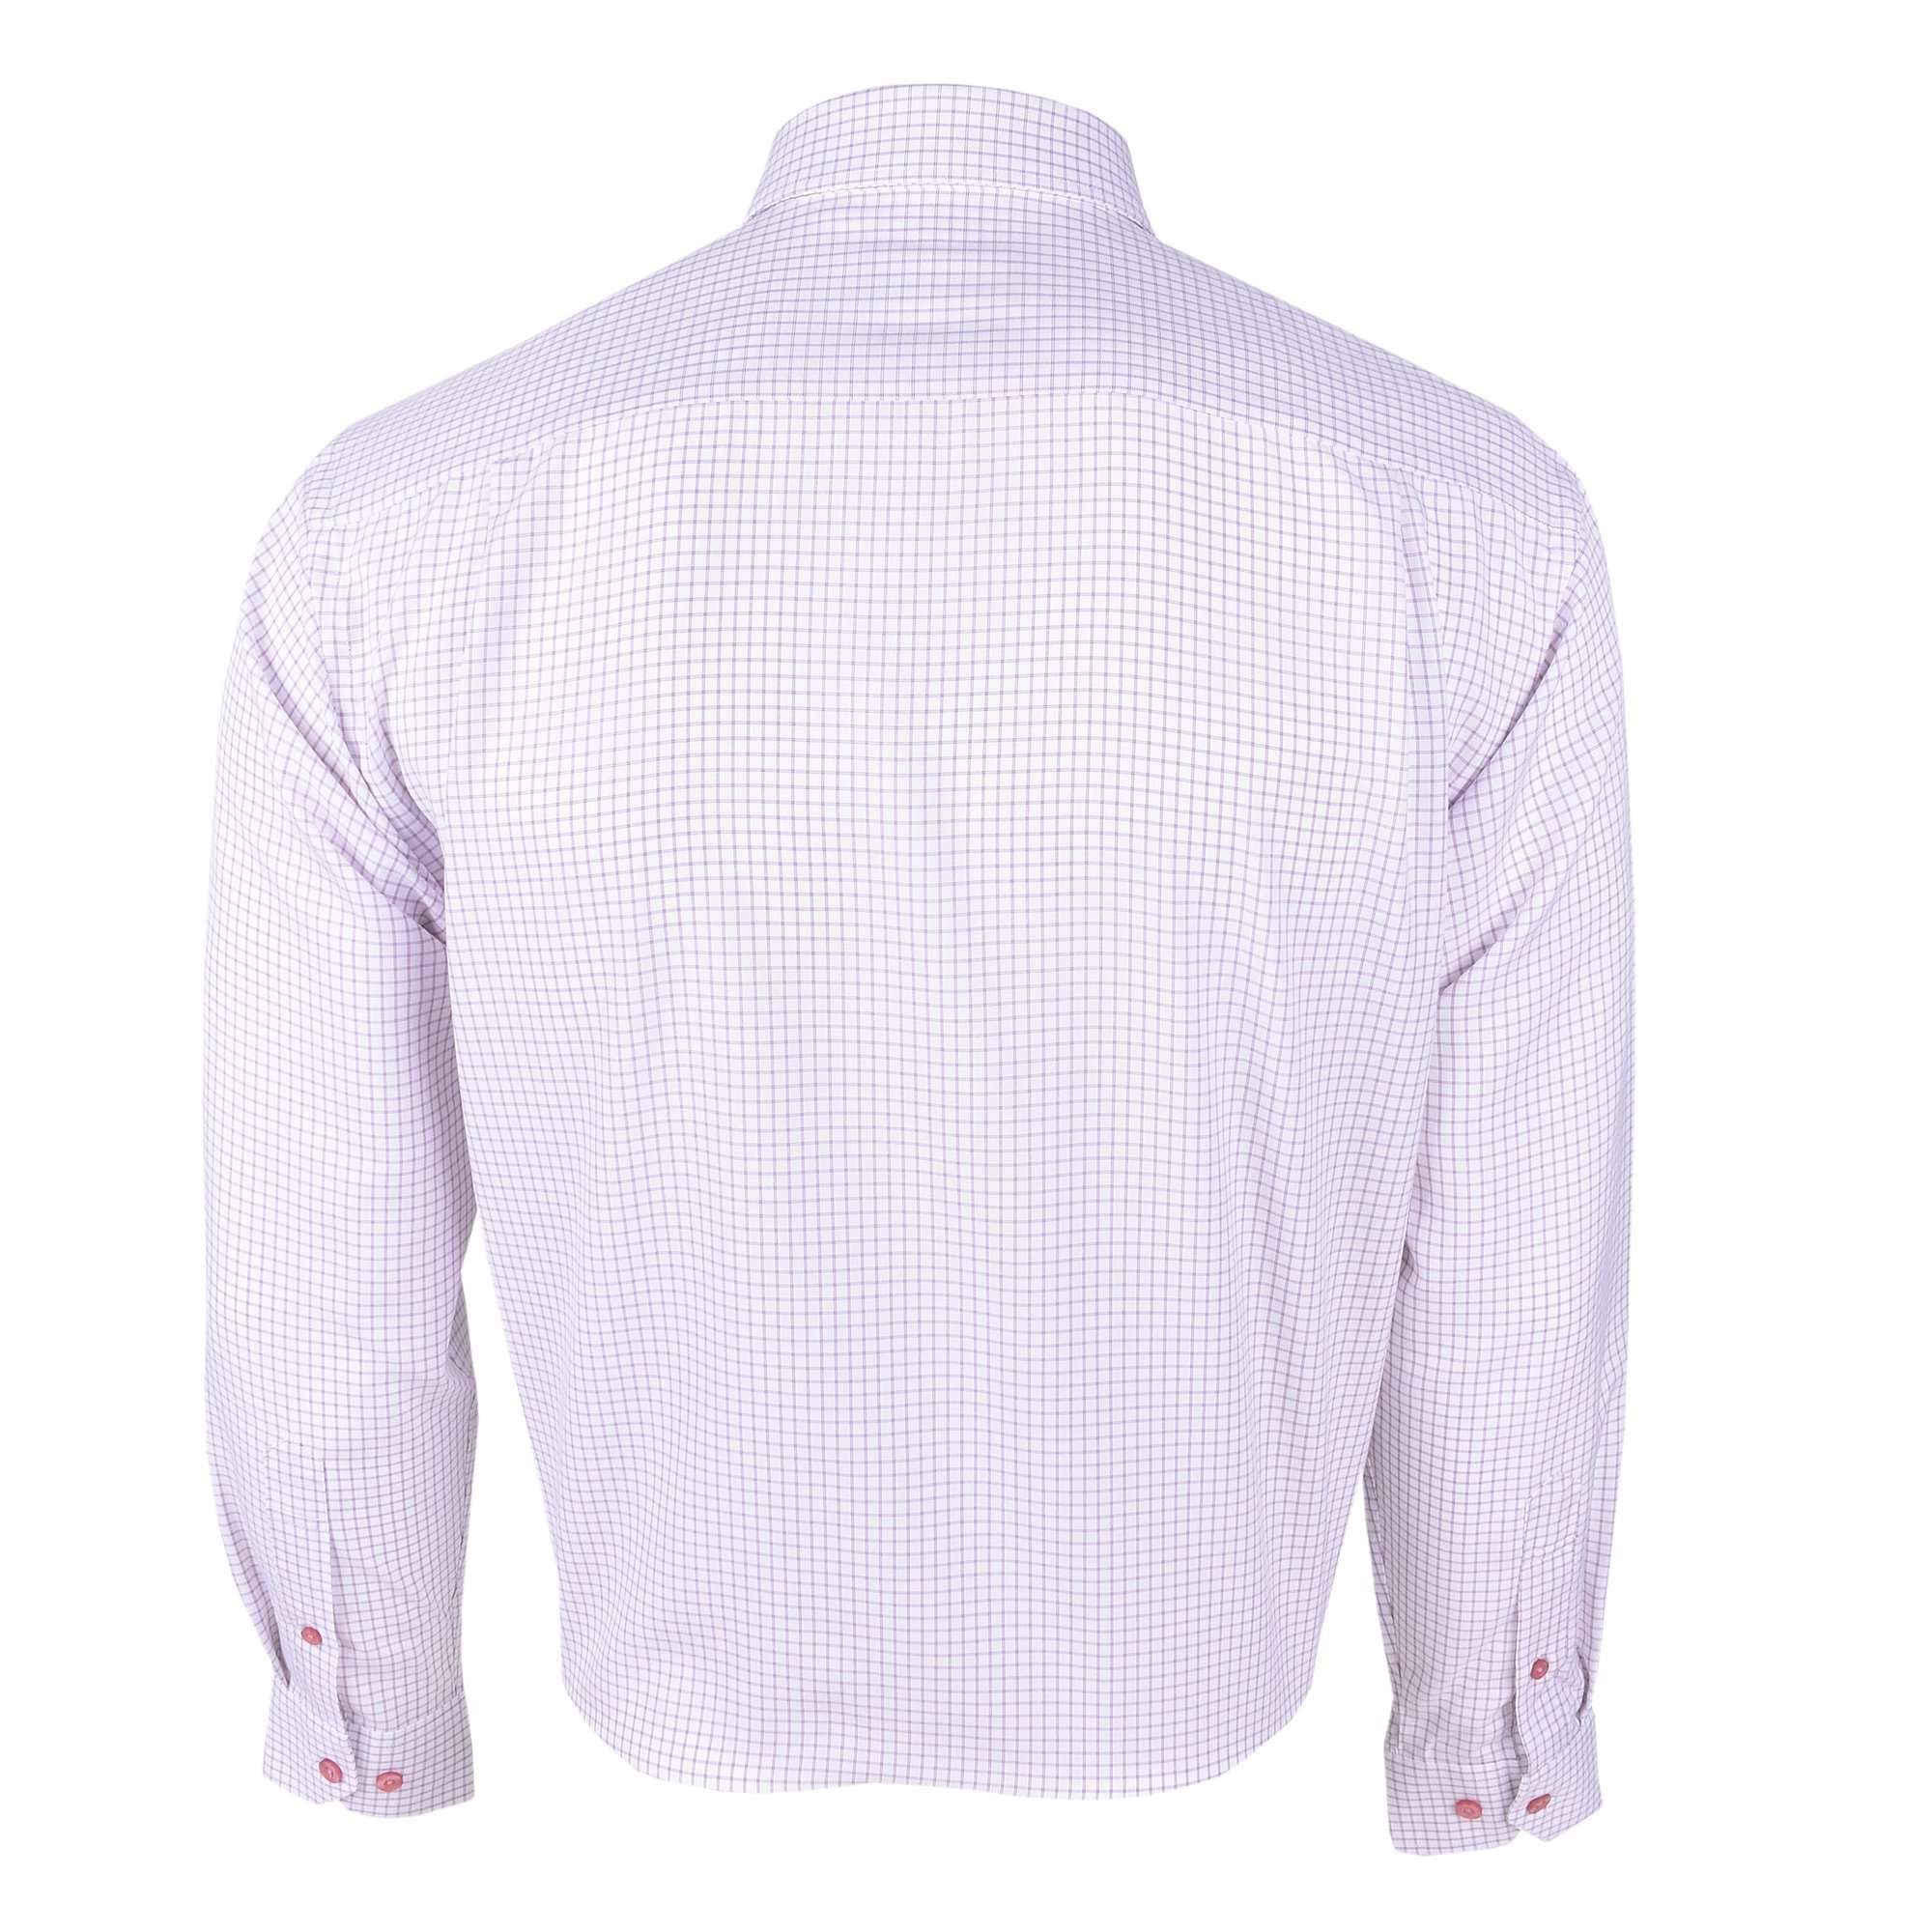 John Master Business Relax Fit Long Sleeves Shirt - Red Line Check 7007009 : Buy John Master online at CMG.MY